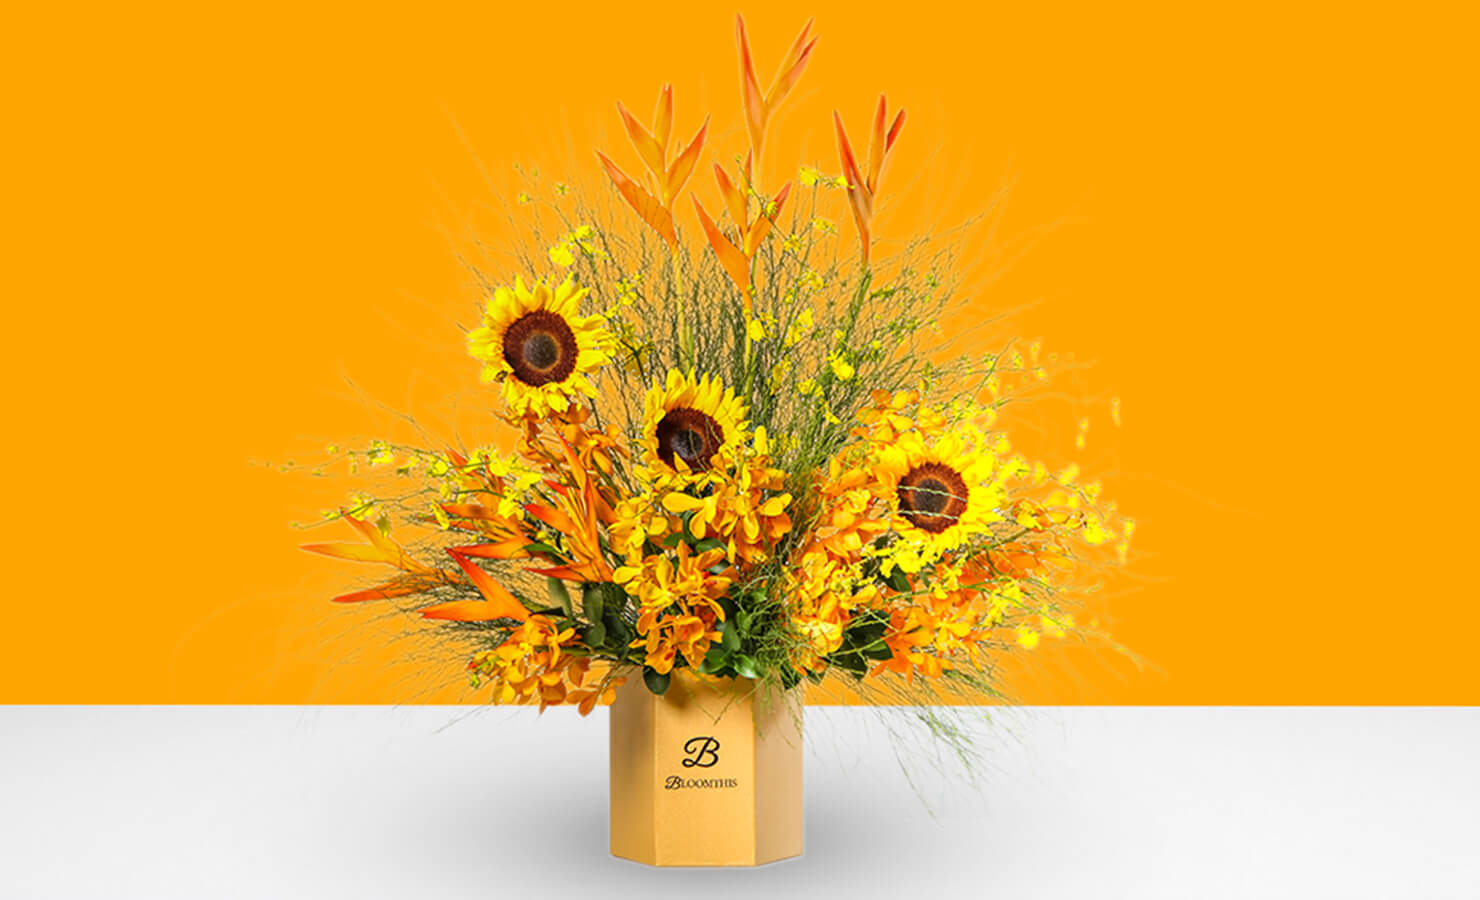 bloomthis-sunflower-products-charismatic